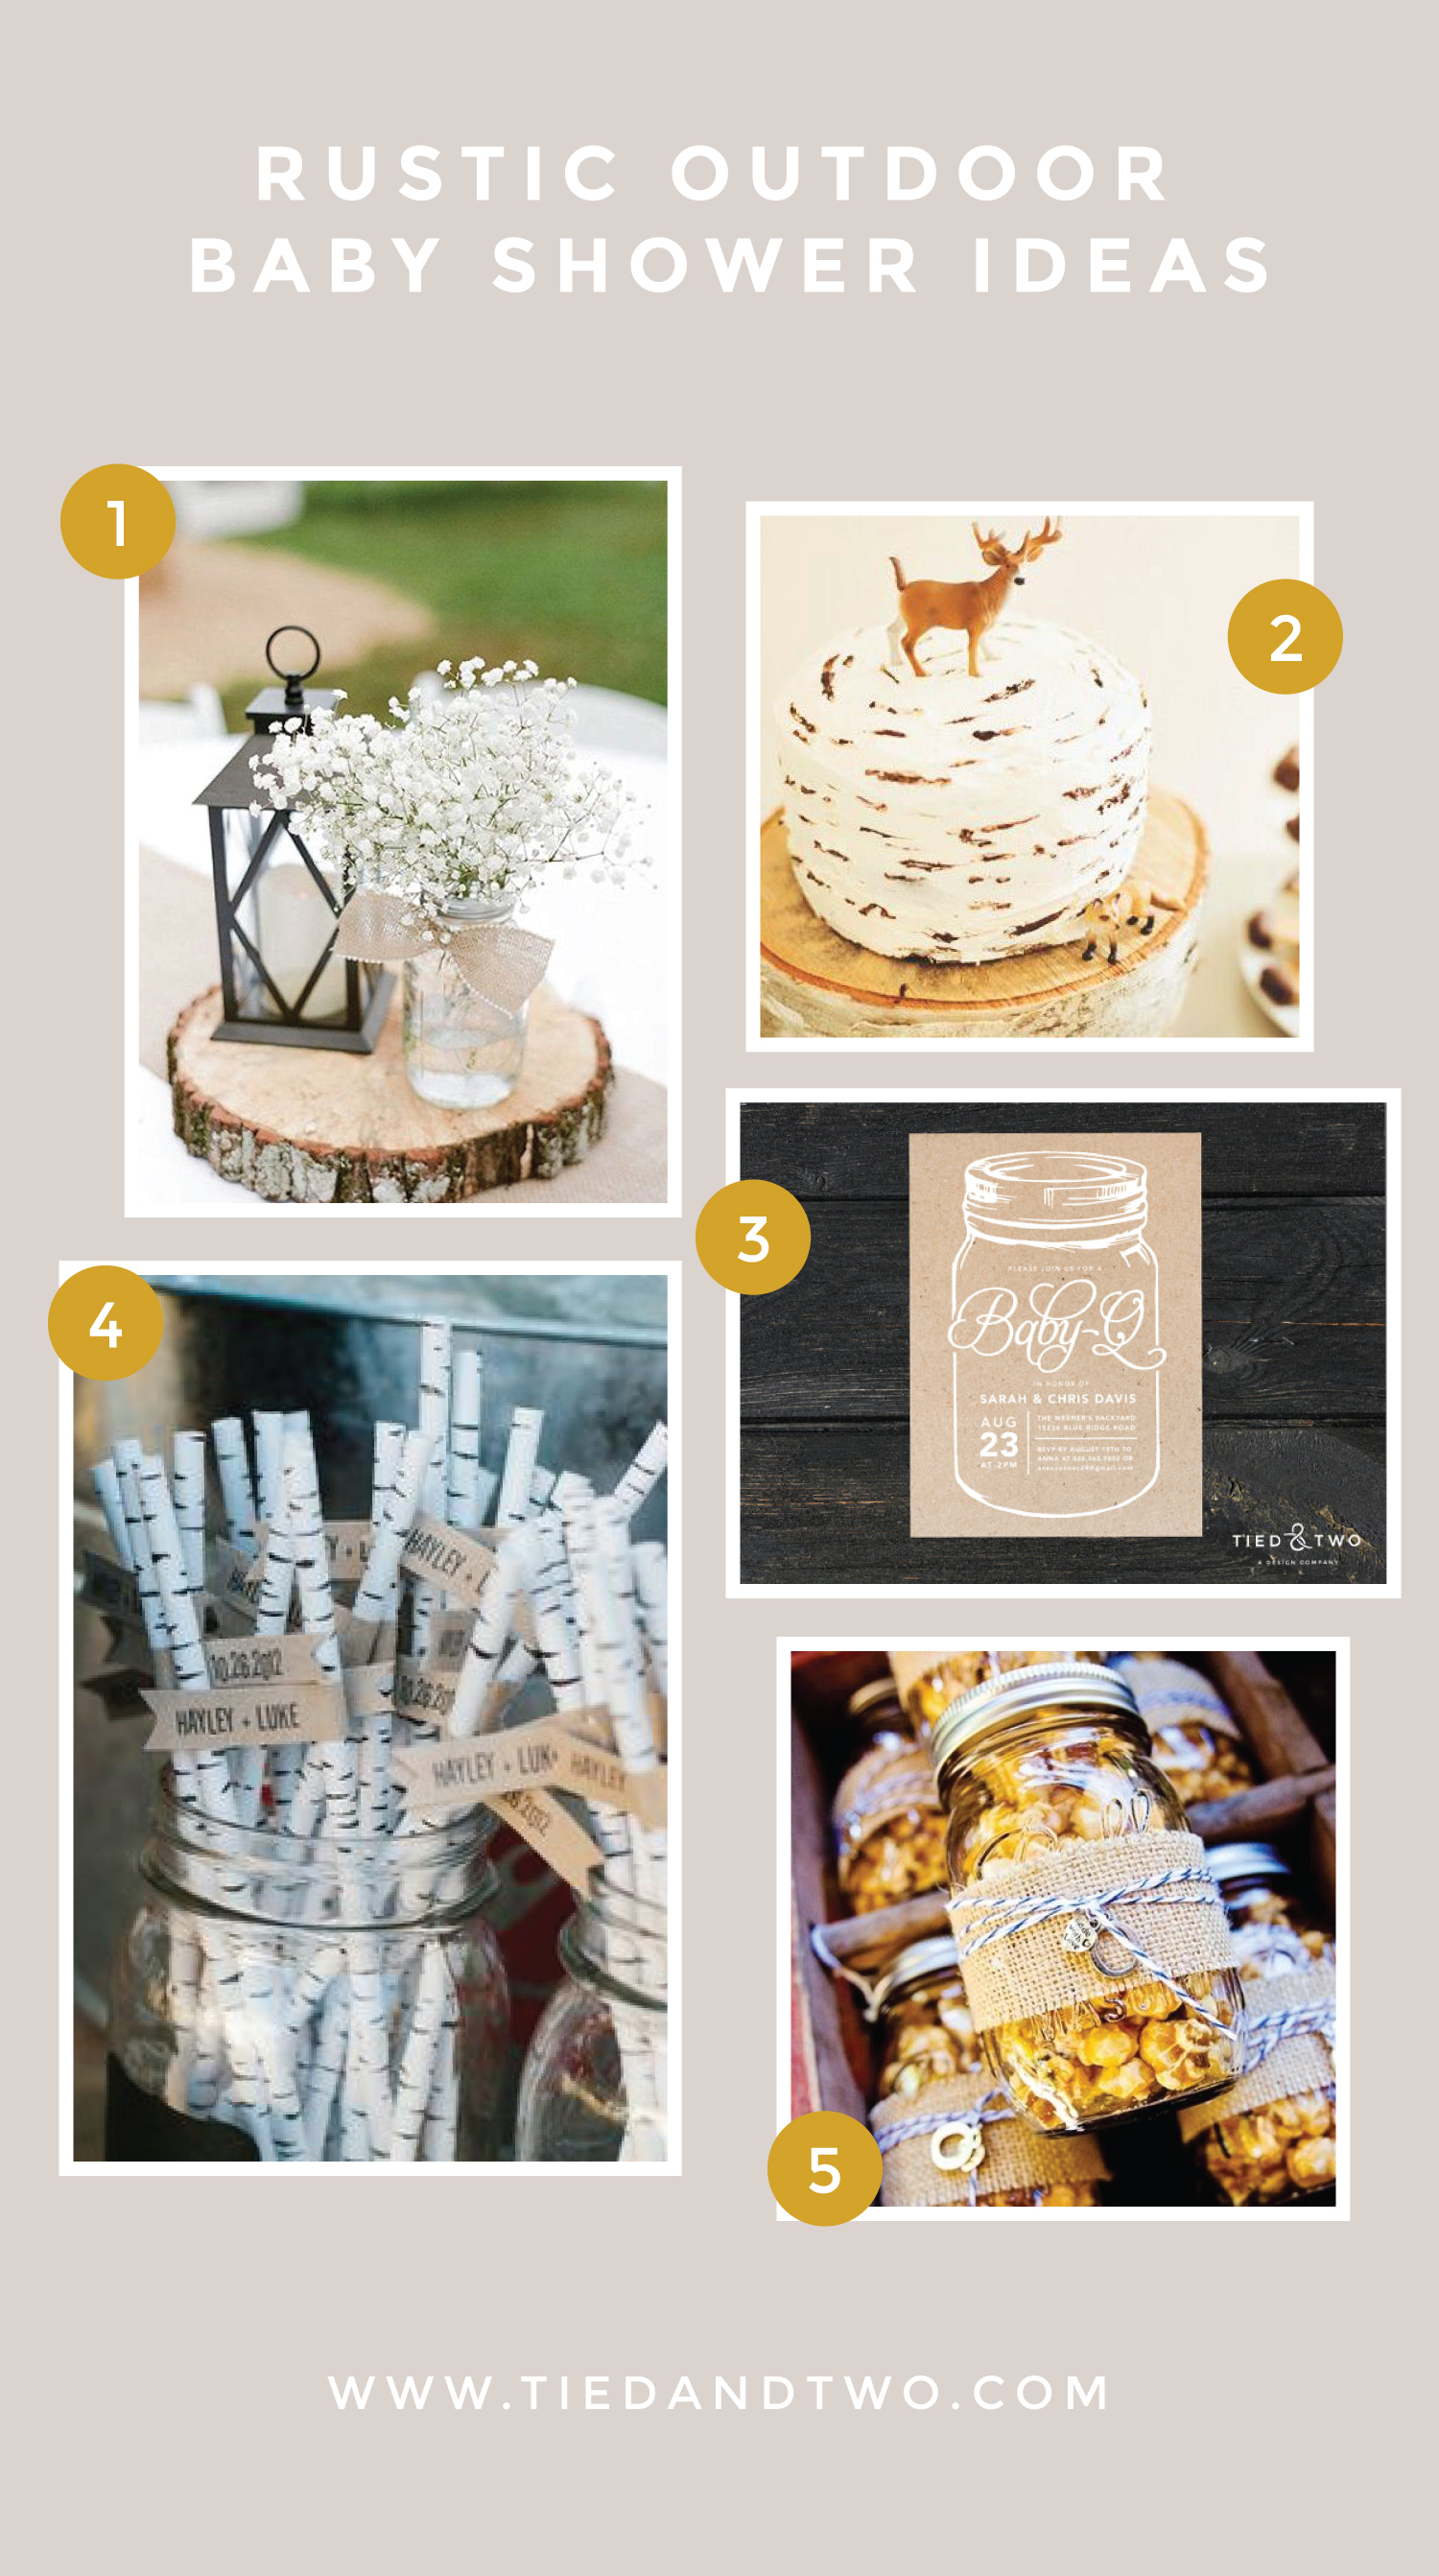 Rustic Outdoor Baby Shower Ideas